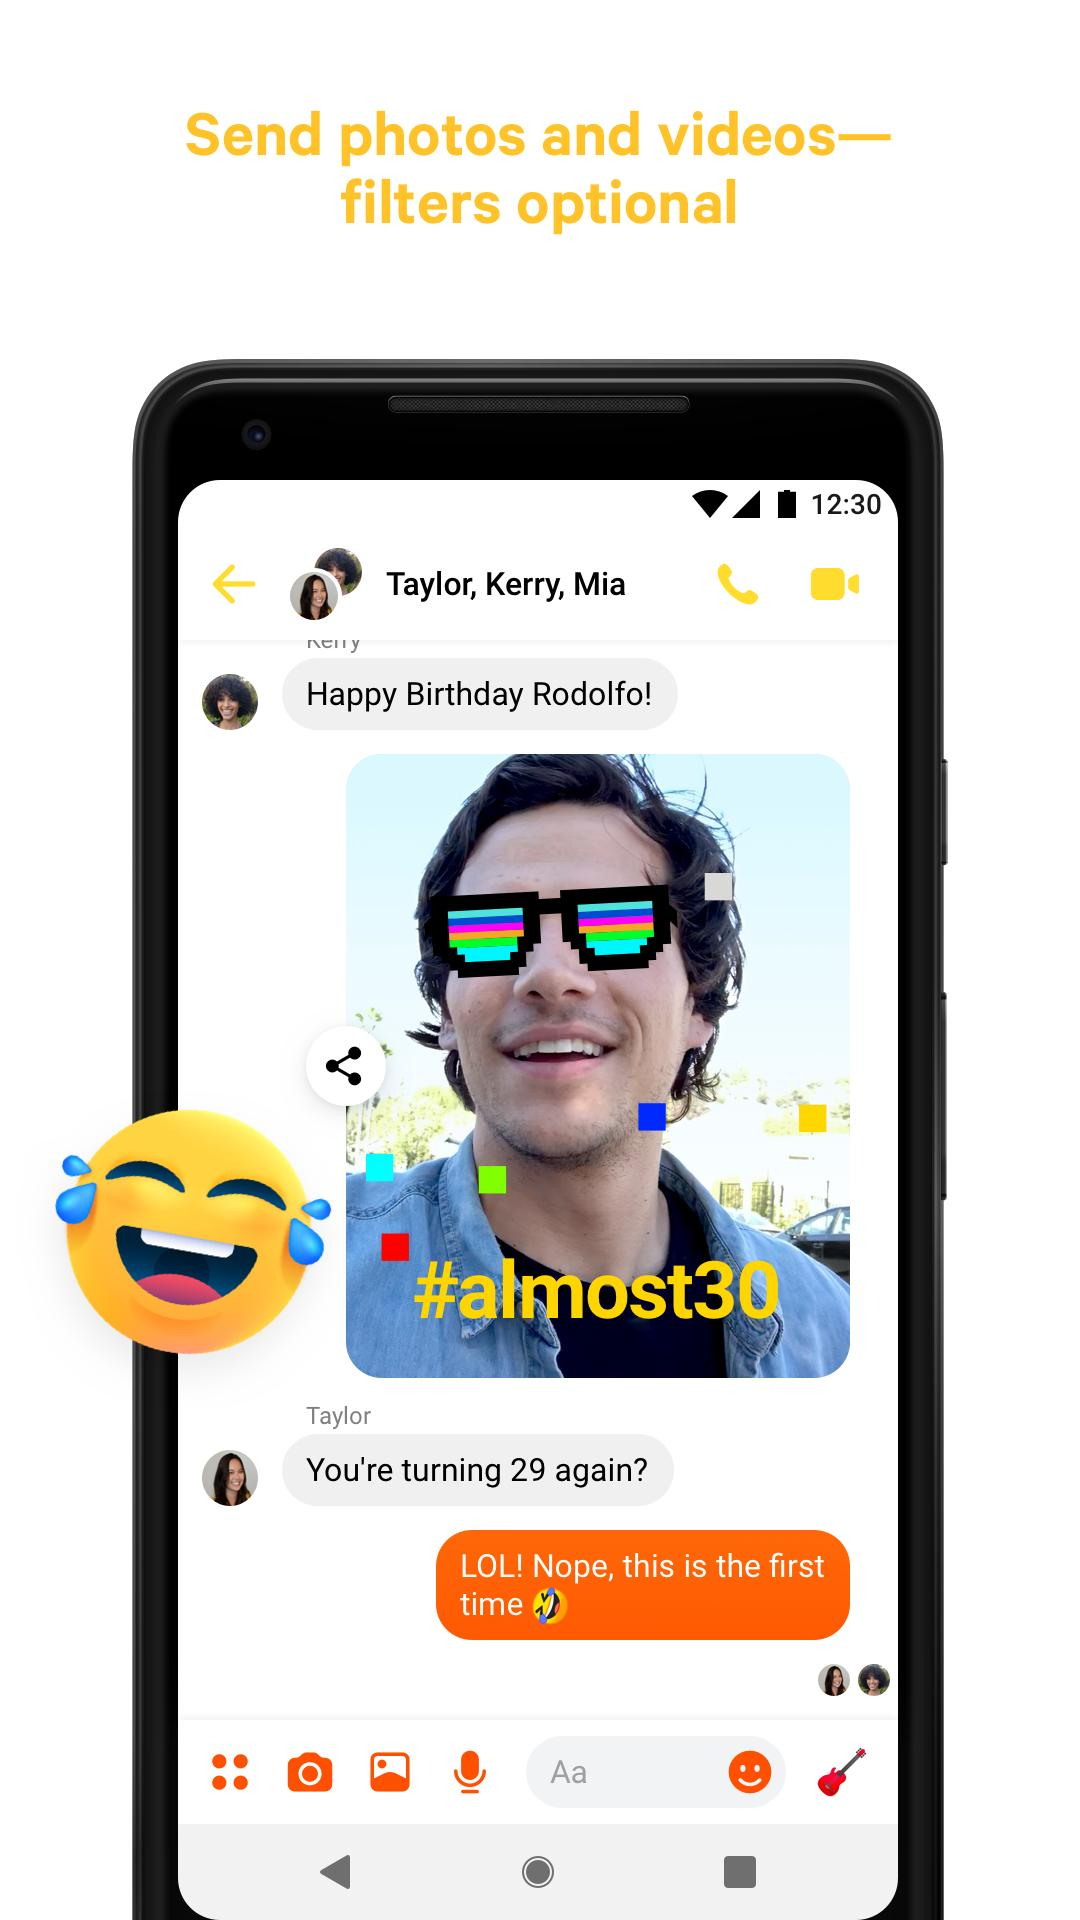 messenger facebook apk android 2.3